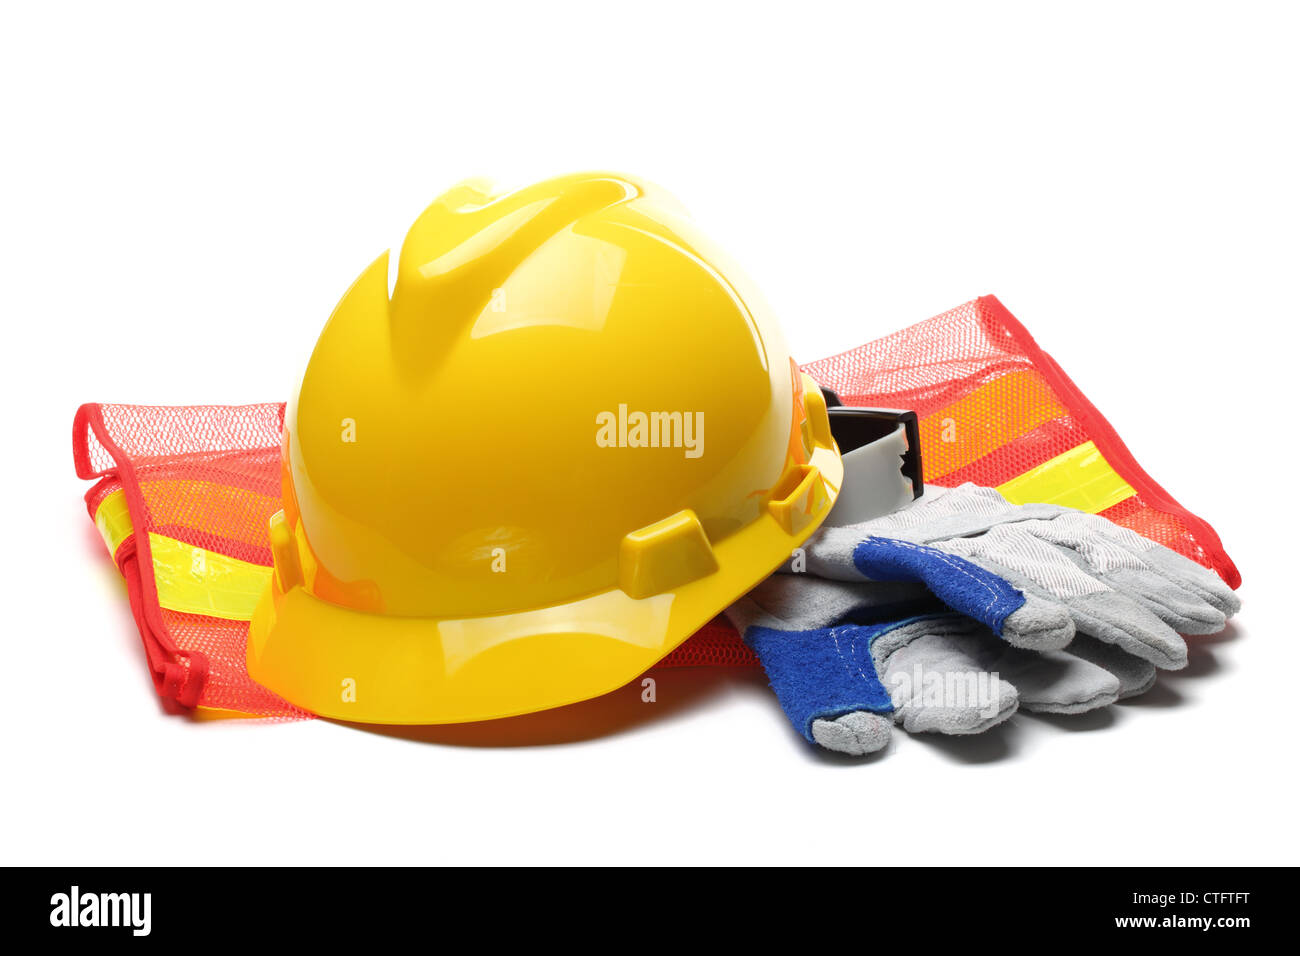 Safety gear kit close up over white. - Stock Image